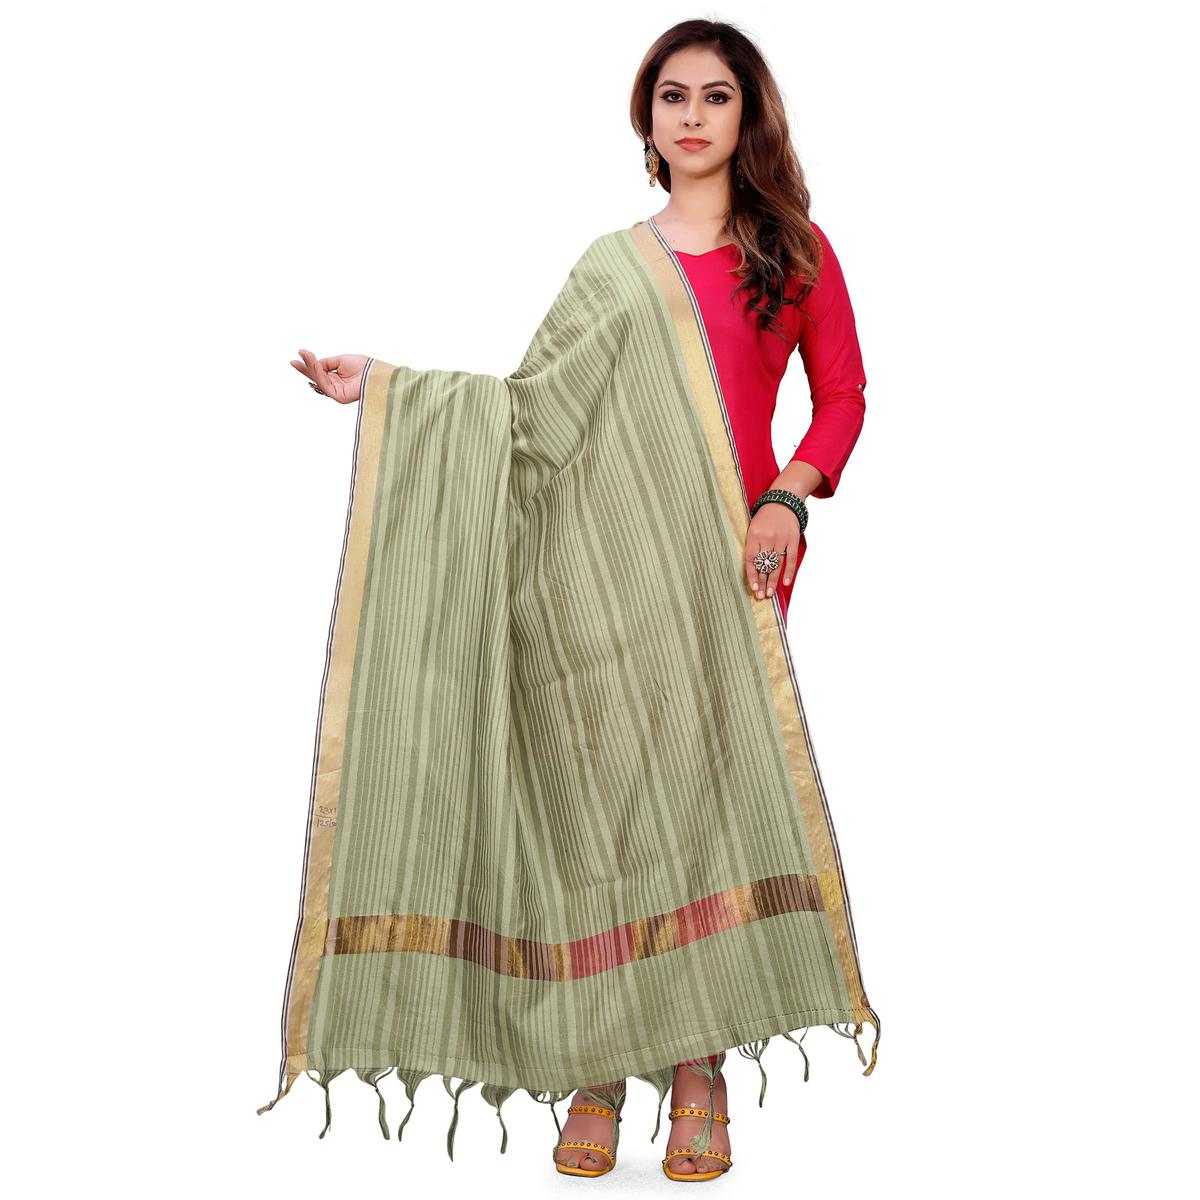 Adorable Light Olive Green Colored Festive Wear Woven Silk Blend Dupatta With Tassels